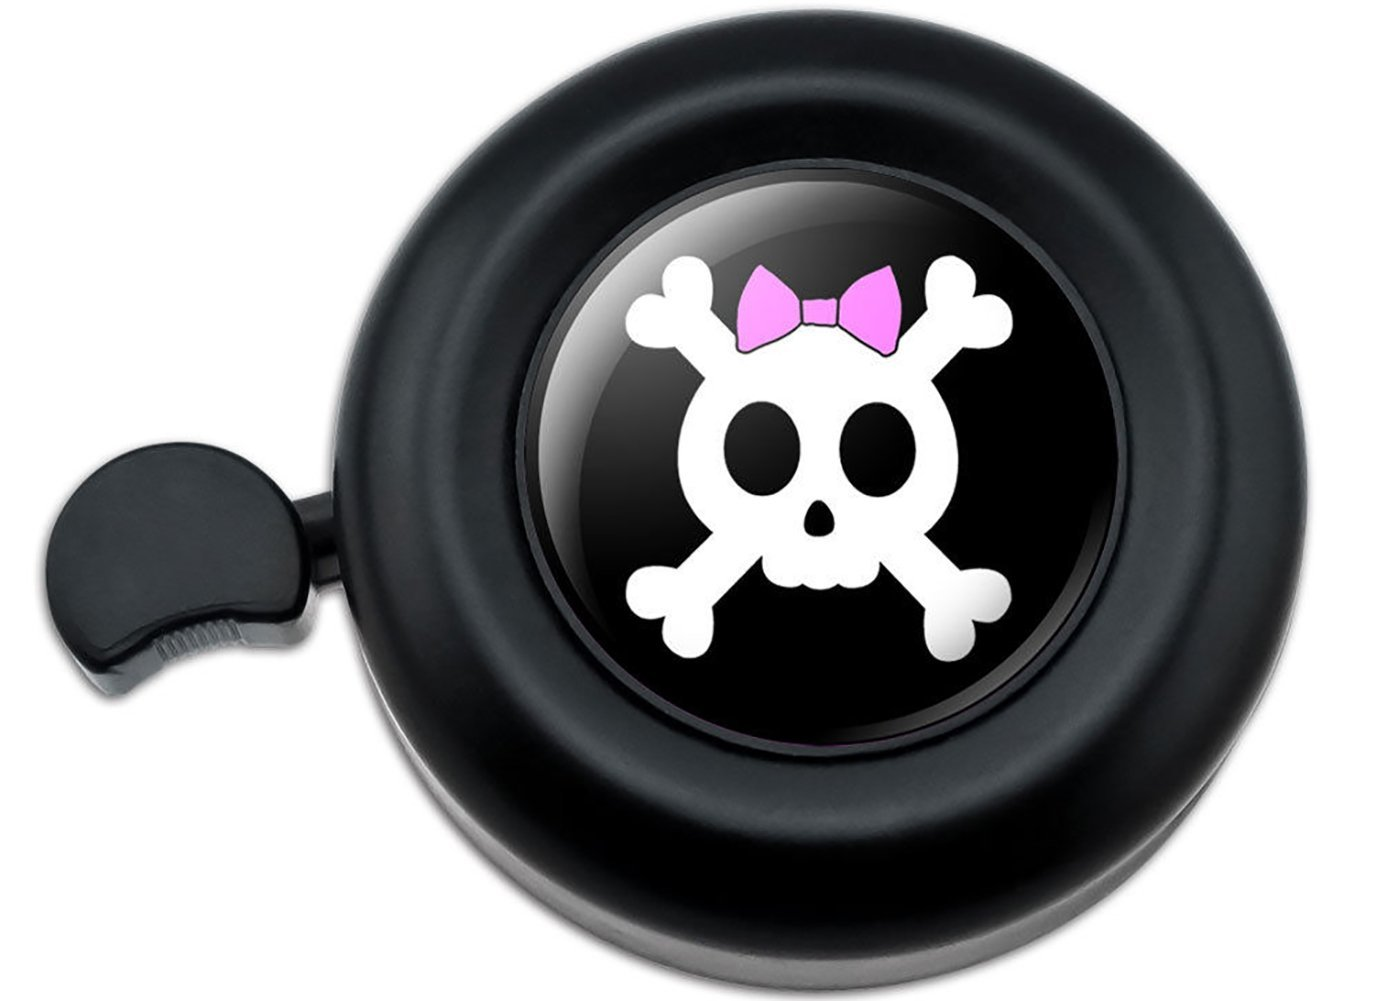 Cool and Custom {Fully Adjustable to Fit Most Bikes} Bicycle Handlebar Bell Made of Hard Metal with Cool Punk Girly Skull & Crossbones w/ Fun Hair Bow Design {Black, Pink & White Colors}